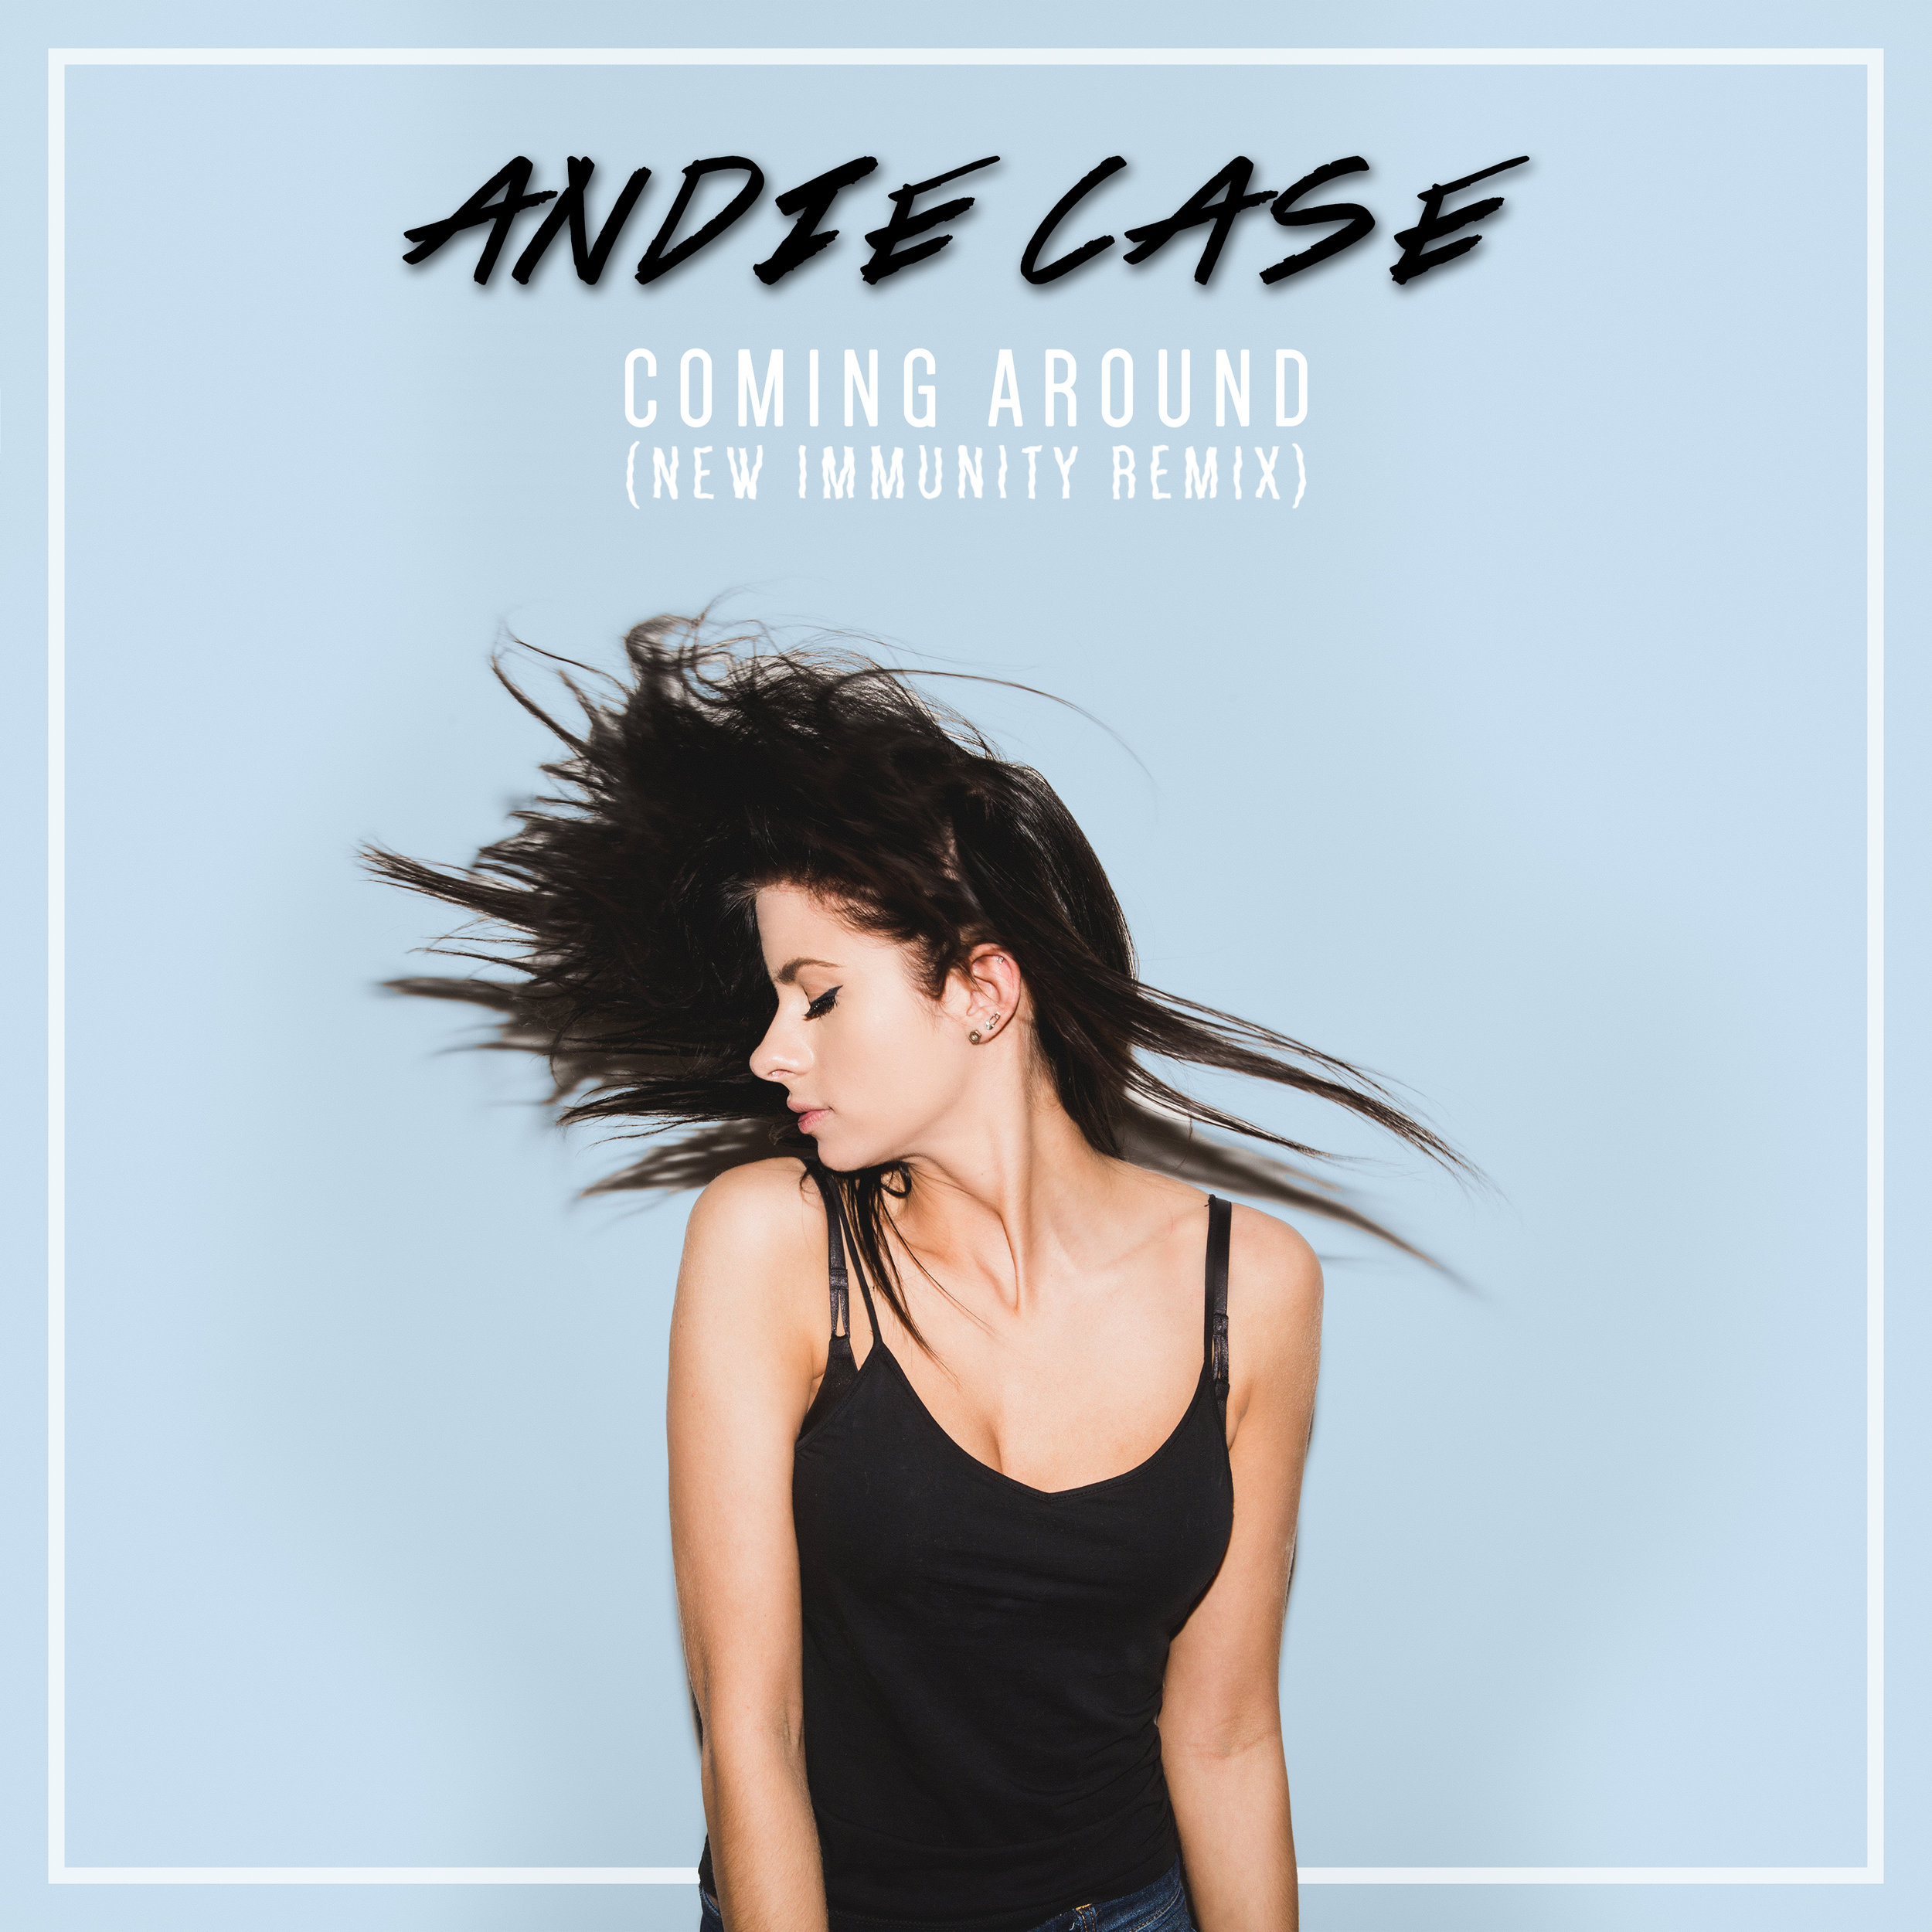 SXS036 Andie Case - Coming Around (New Immunity Remix)